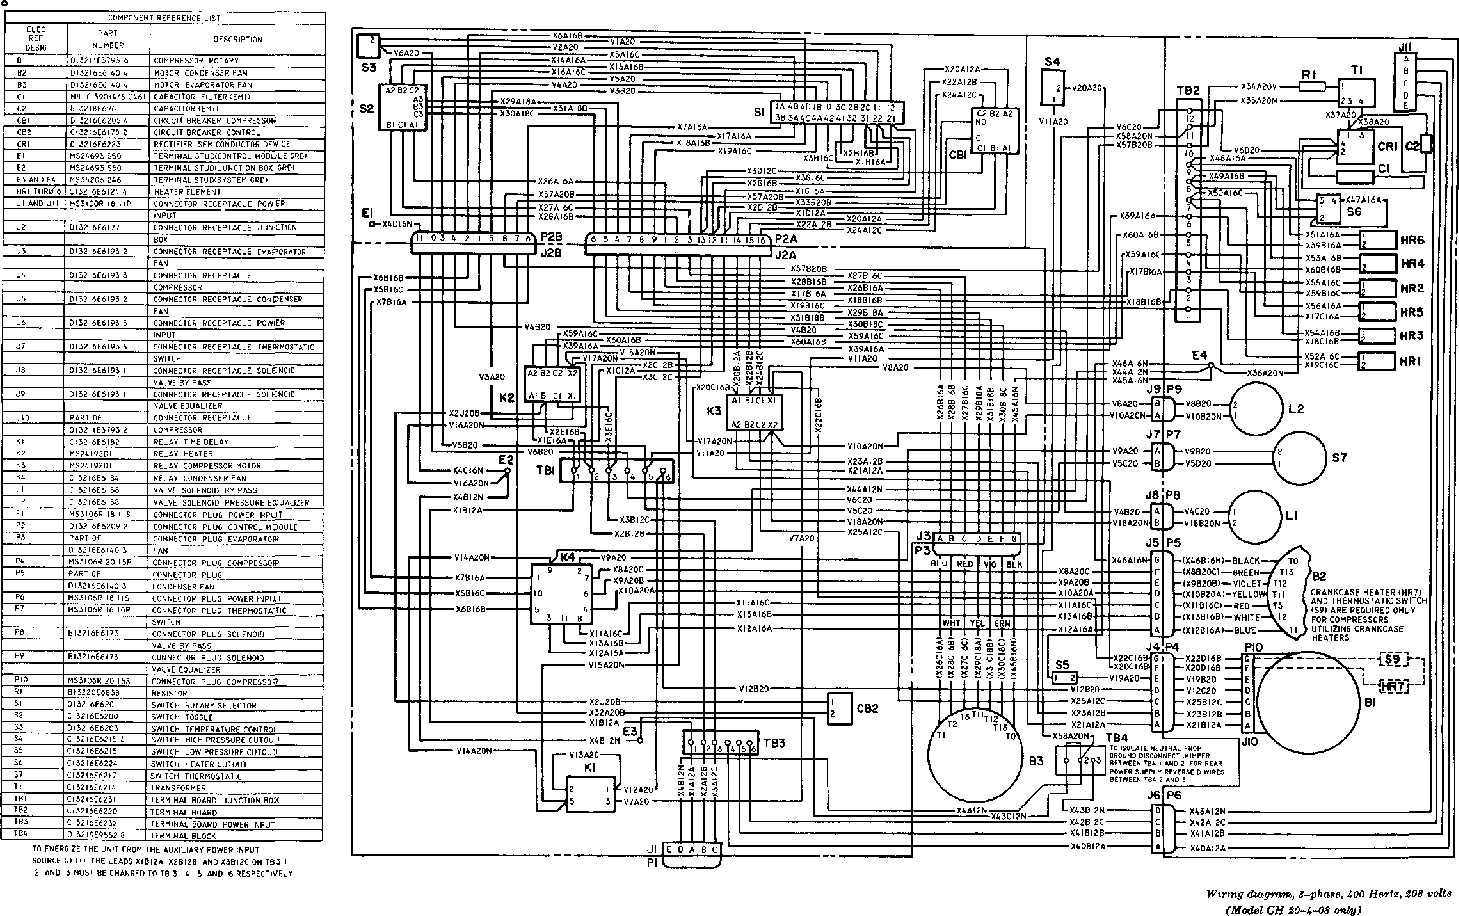 208 Industrial Wiring Diagram - Example Electrical Wiring Diagram •